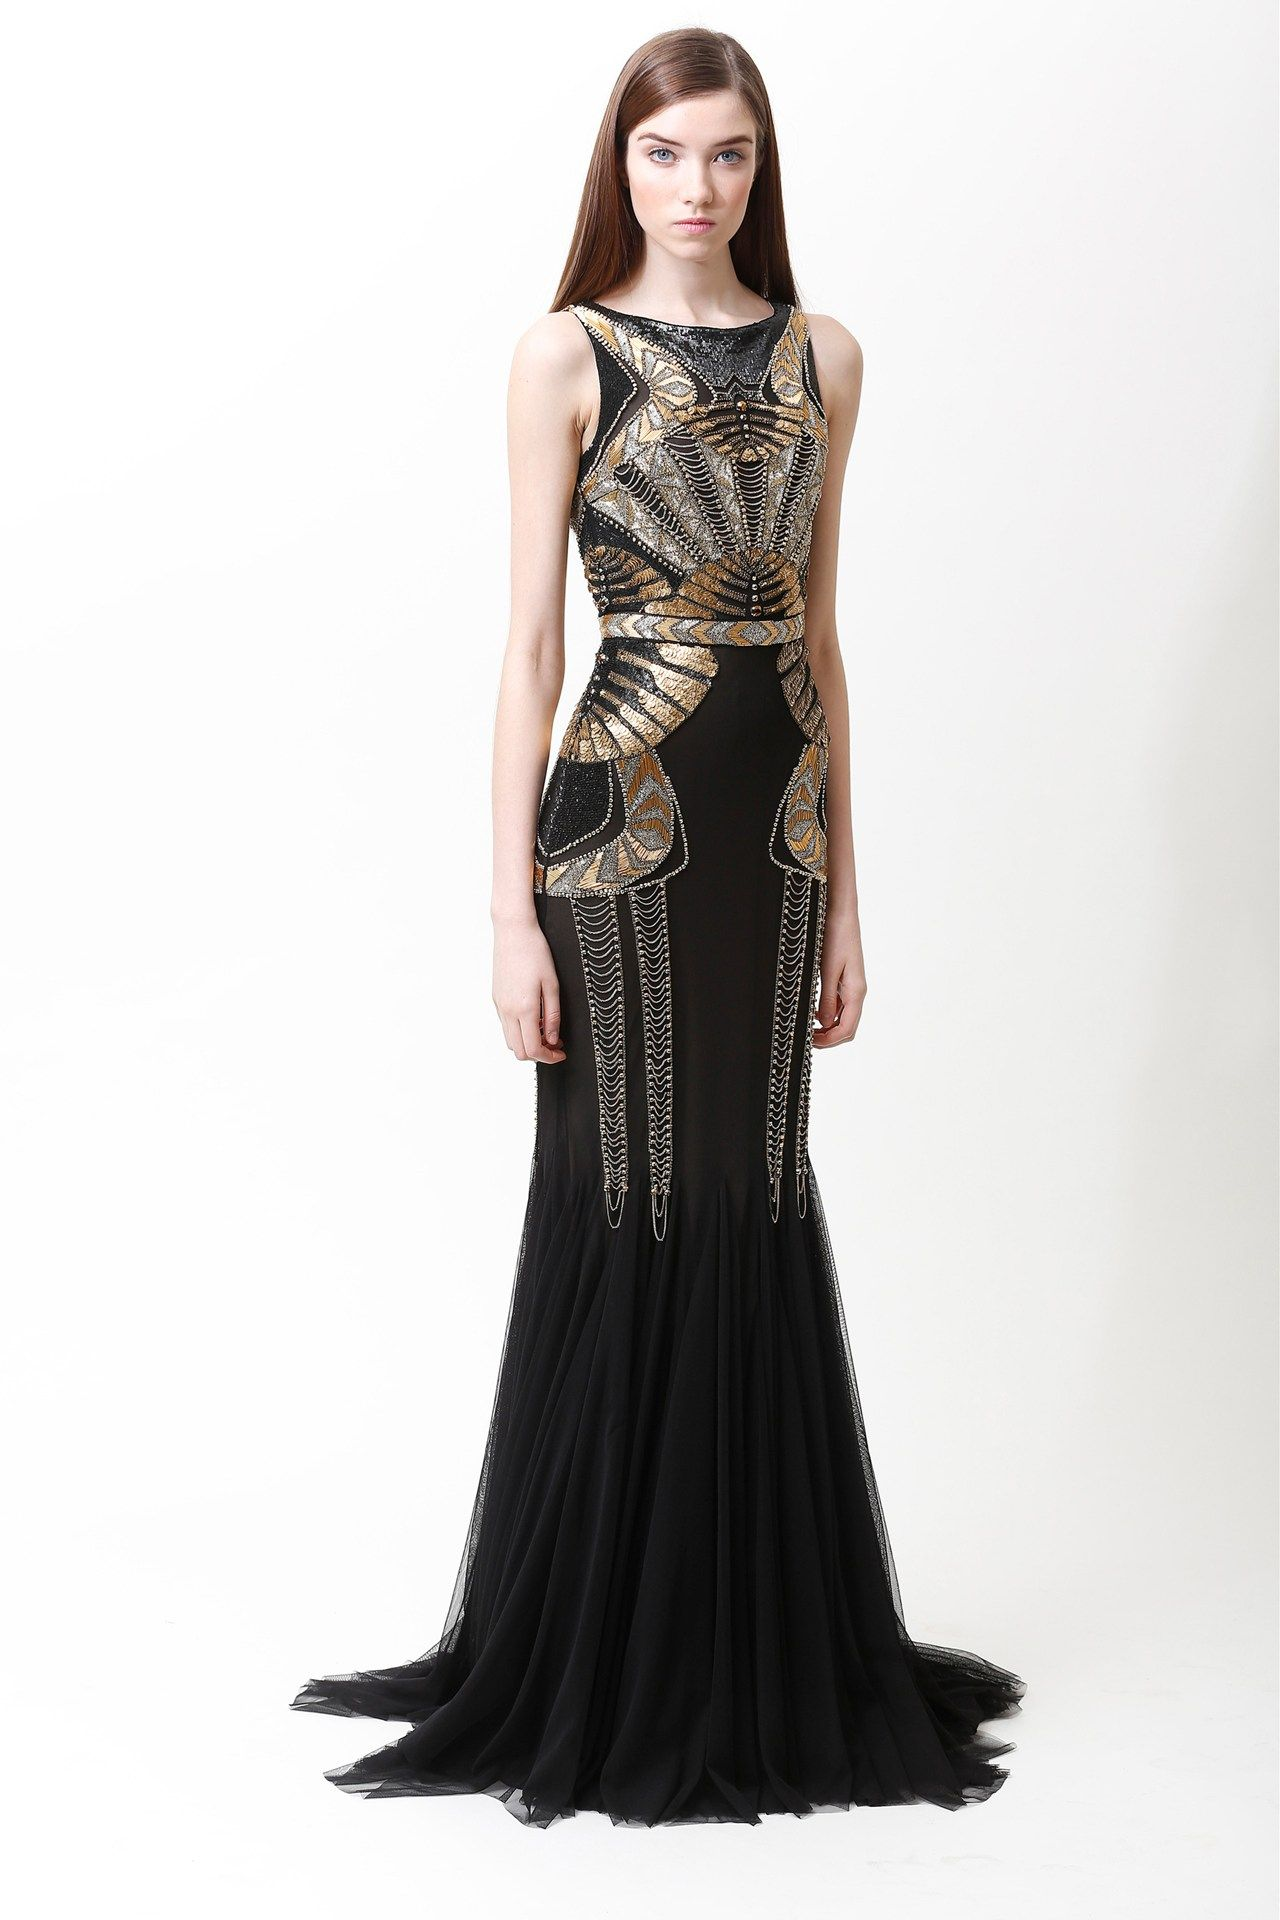 Badgley mischka art deco inspired sequined black gown vestidos